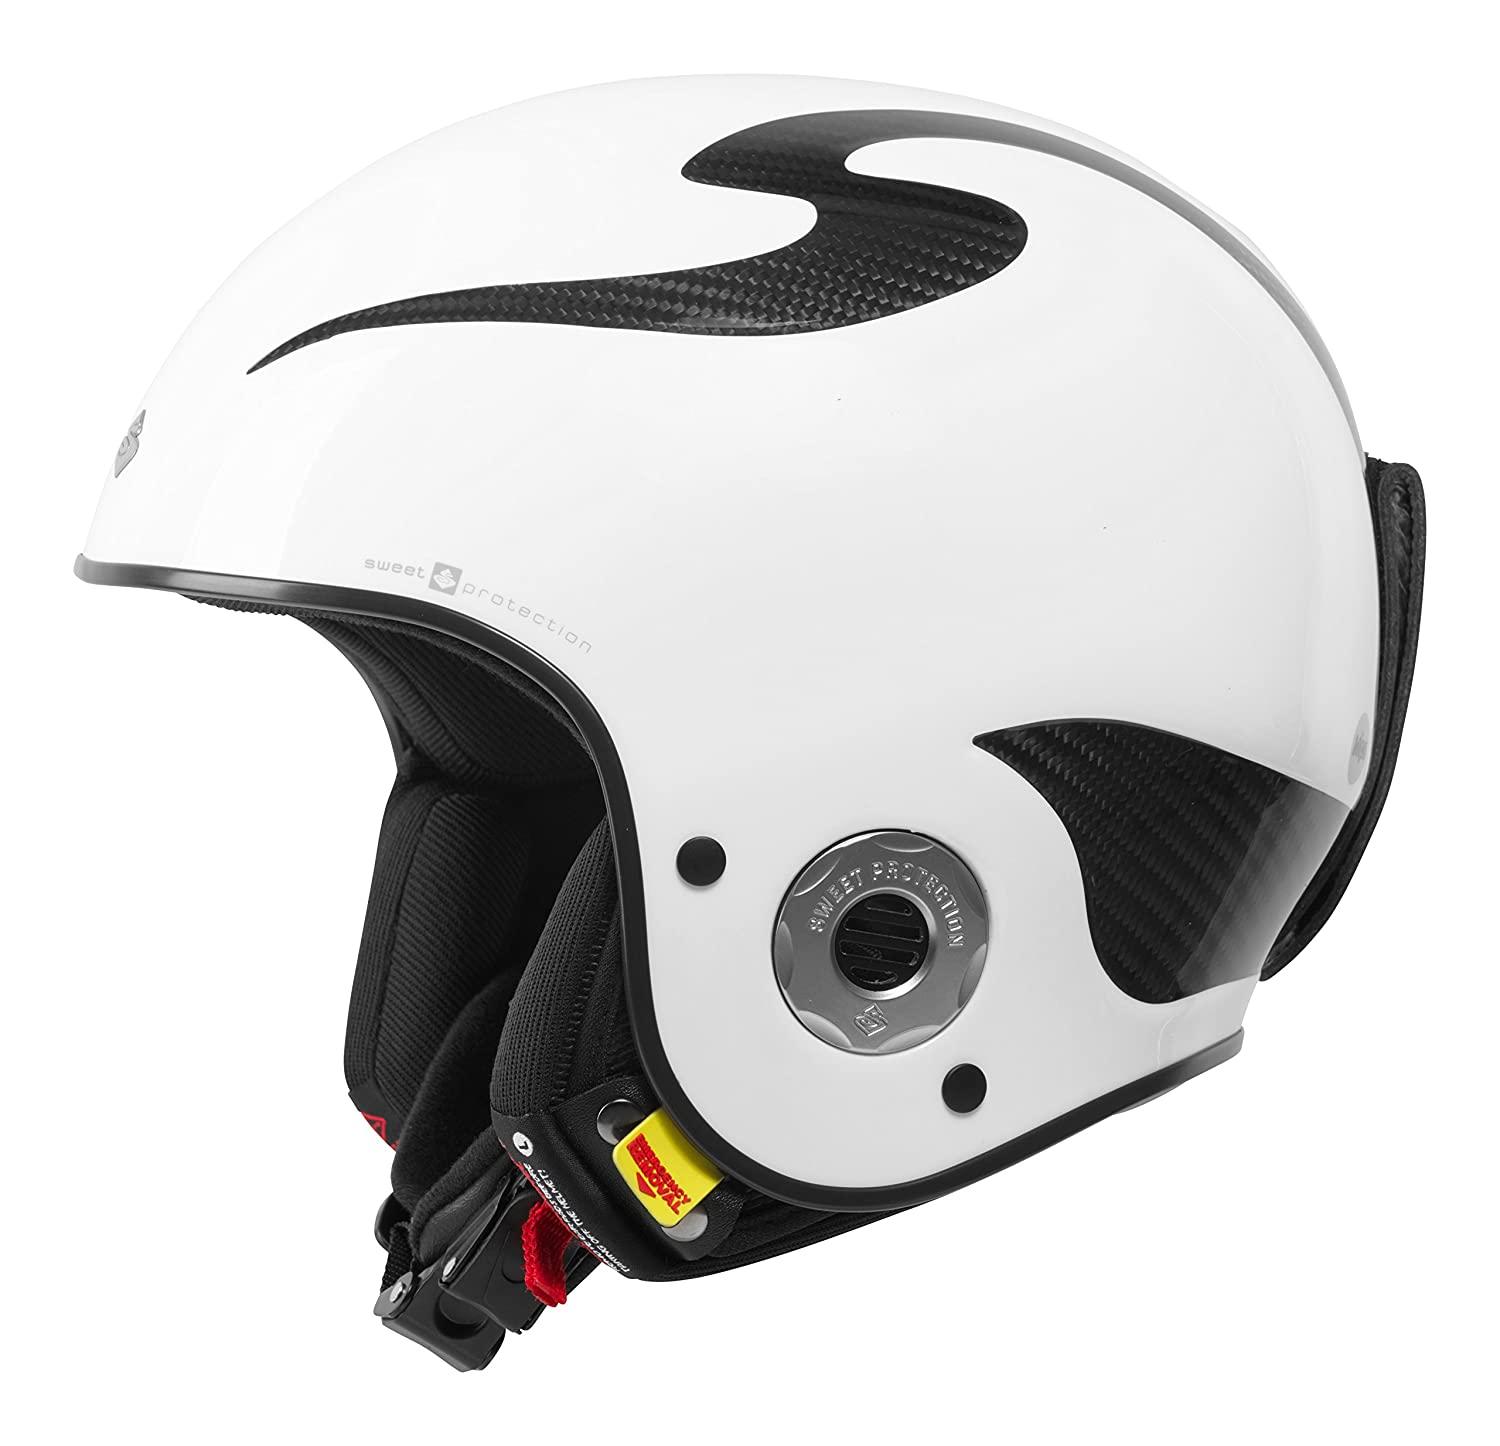 Amazon.com : Sweet Protection Rooster Discesa RS Helmet 2018 : Sports & Outdoors